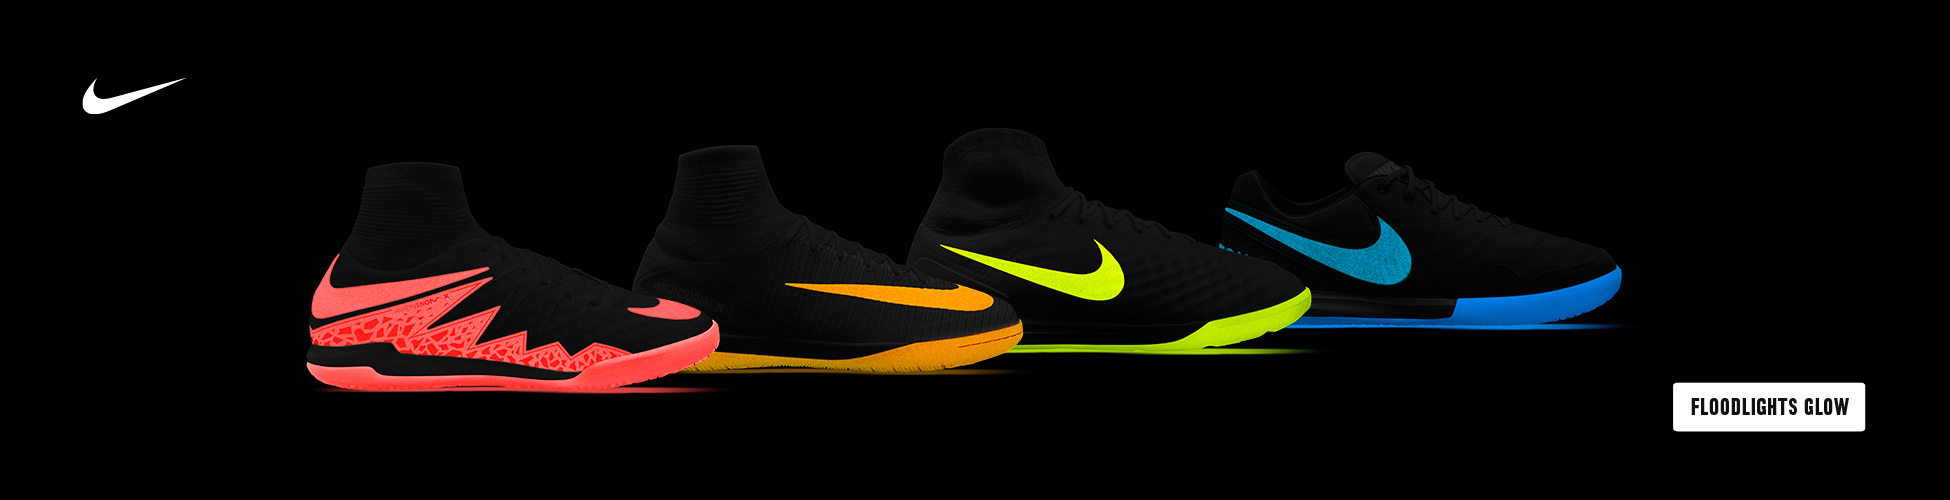 Nike Floodlights Glow B